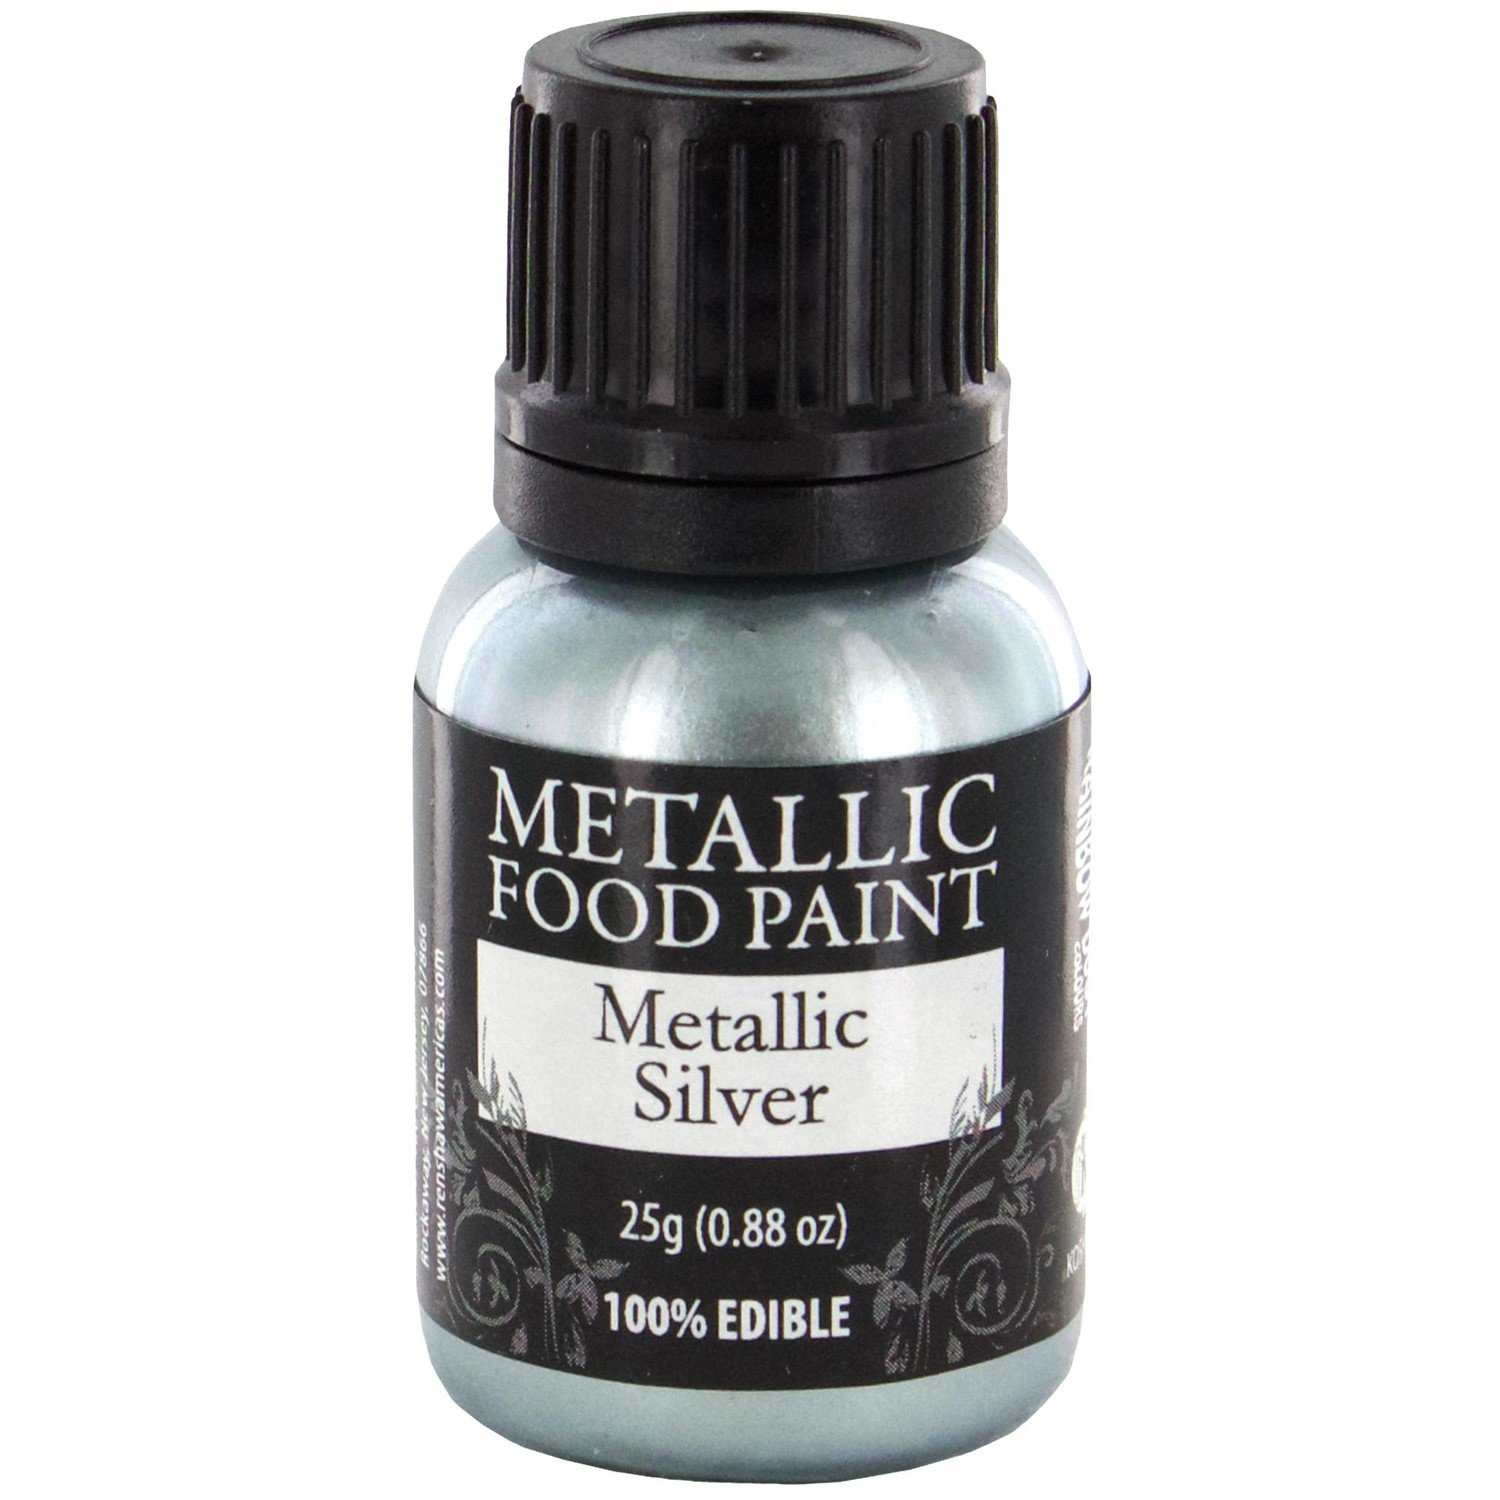 Rainbow Dust Metallic Food Paint Silver